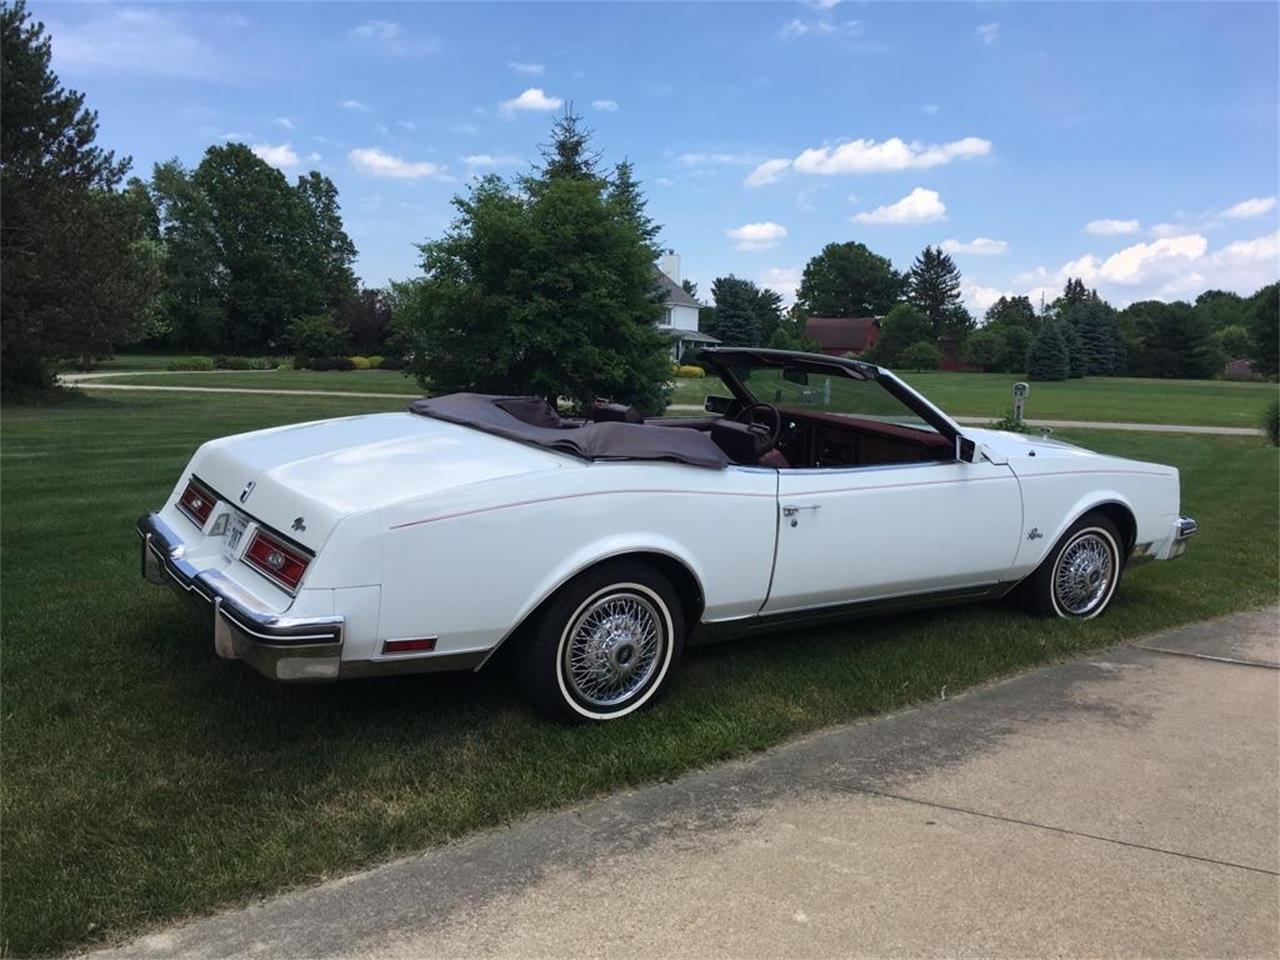 Large Picture of '83 Riviera located in Wadsworth Ohio - $14,000.00 Offered by a Private Seller - LHEX